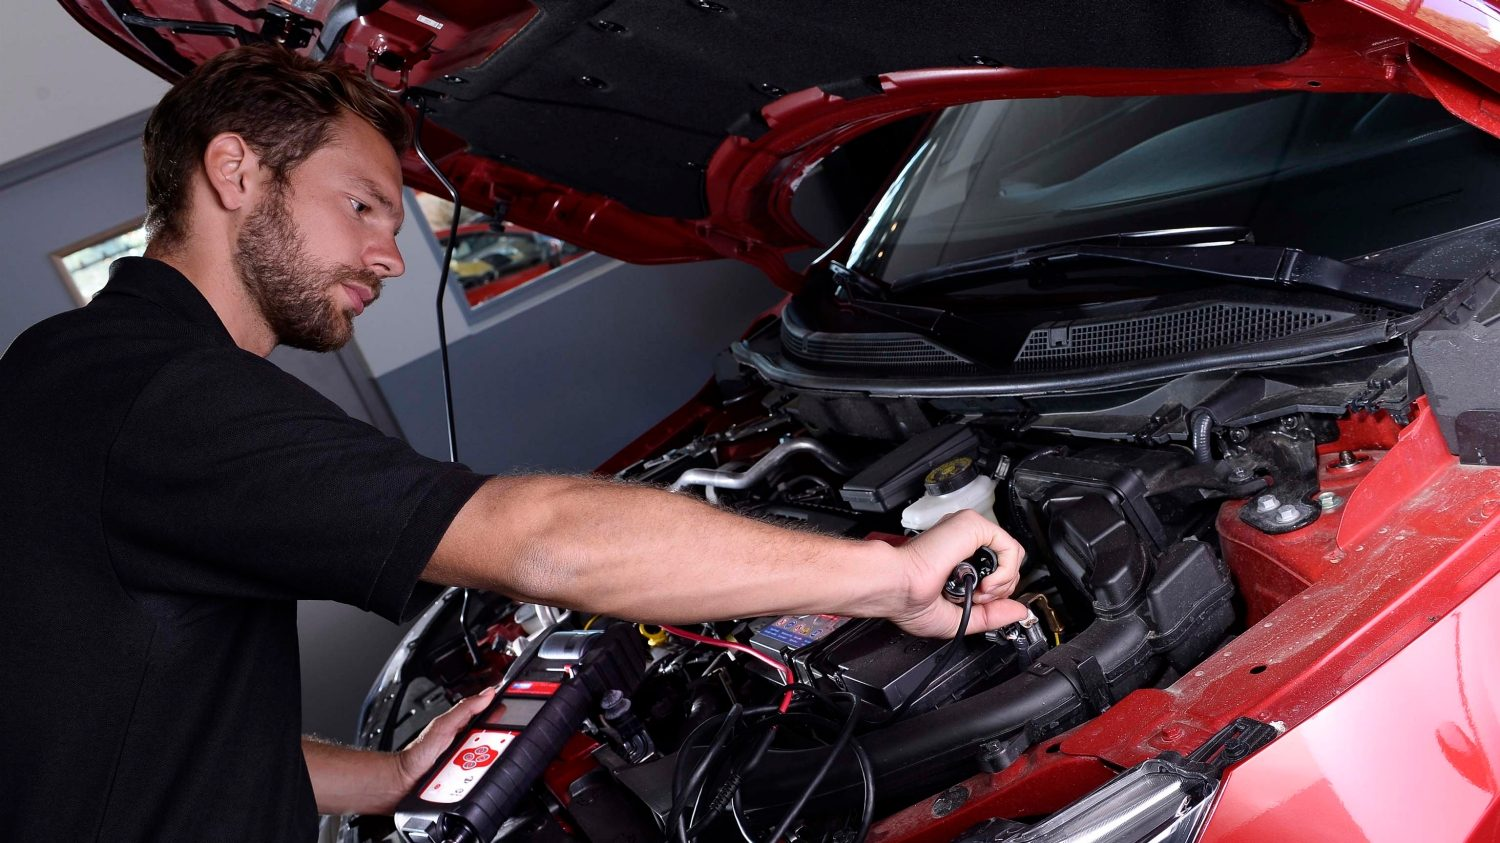 Nissan - Maintenance and repair - Batteries